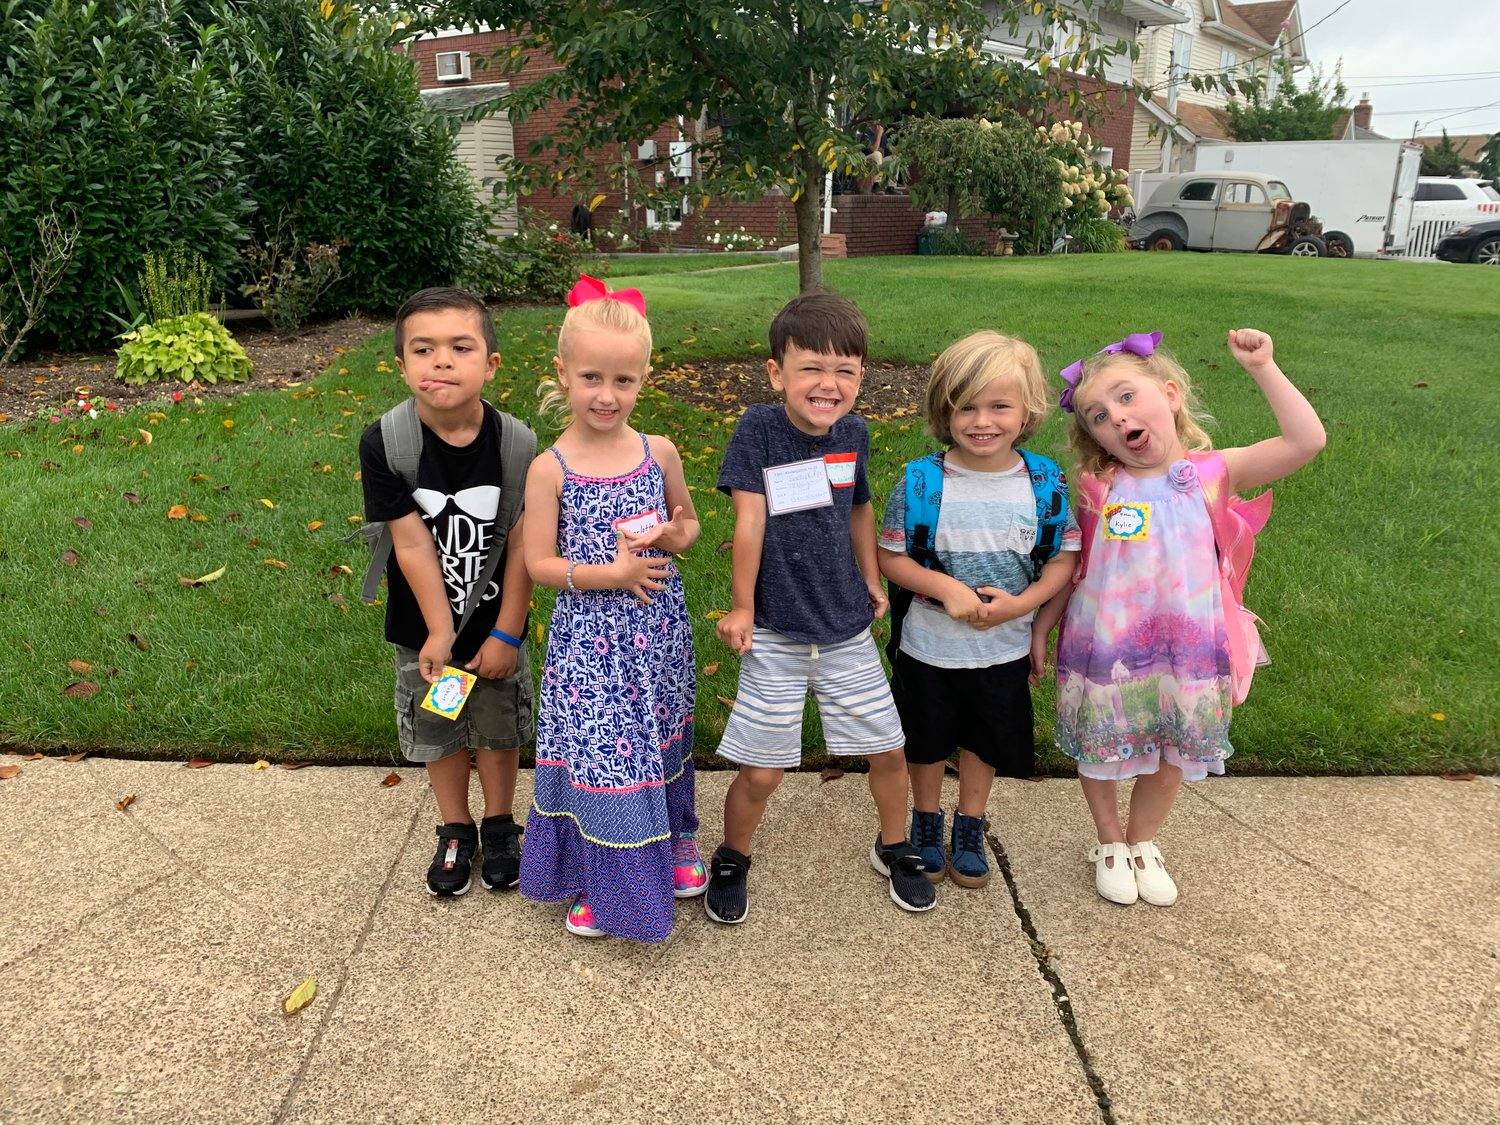 Wednesday marked the first day of kindergarten for, from left, RJ Plant, Charlotte Weiss, Timmy Pyle, Trent Tortorella and Kylie Harper at Francis X. Hegarty Elementary School.